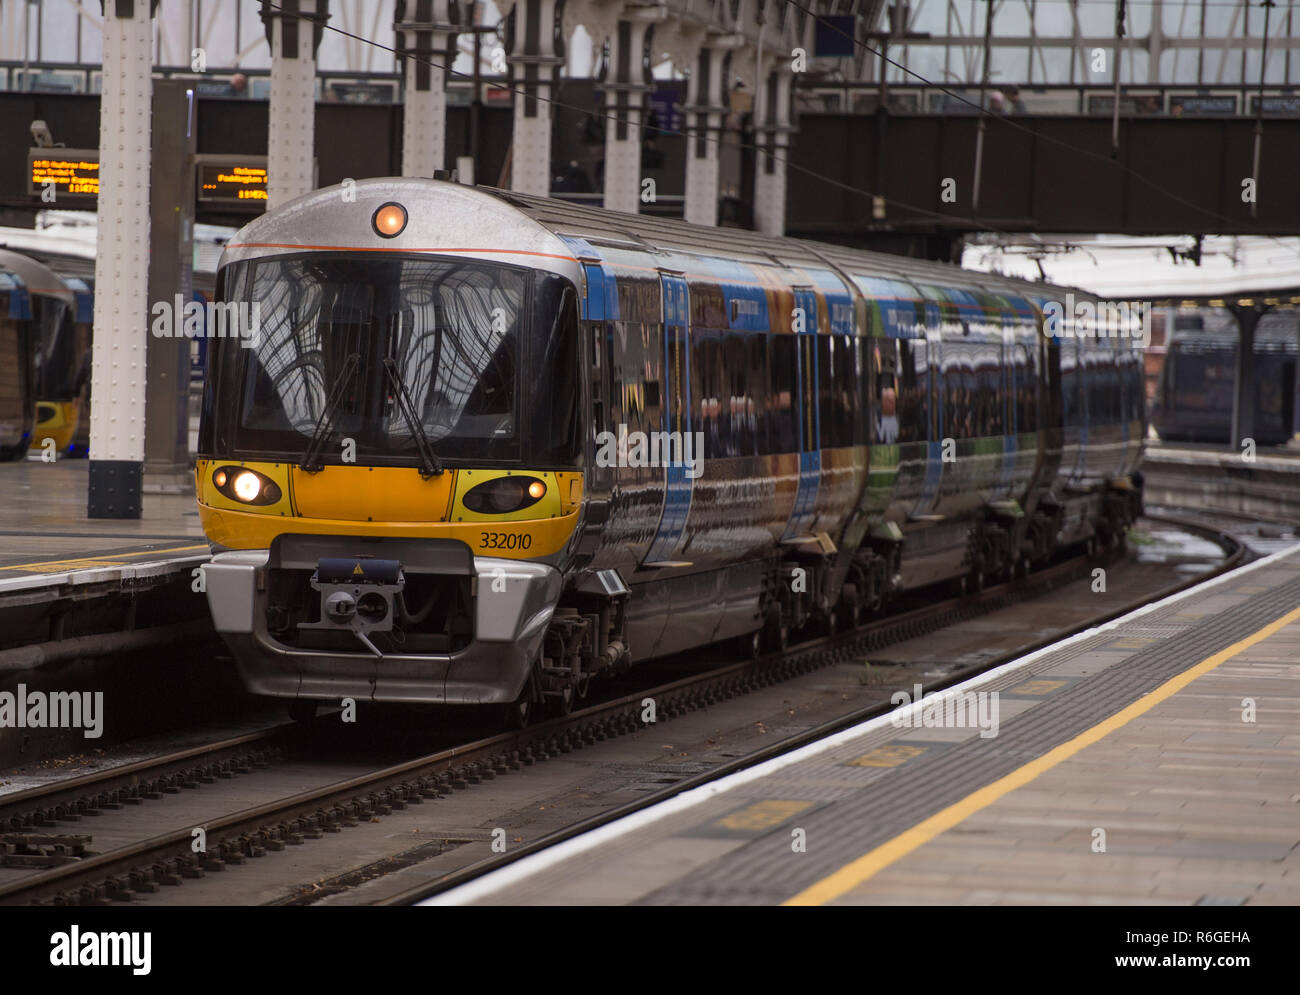 December 2018. Heathrow Express British Rail Class 332 electric multiple unit 332010 arriving at Paddington Station, London, UK. - Stock Image